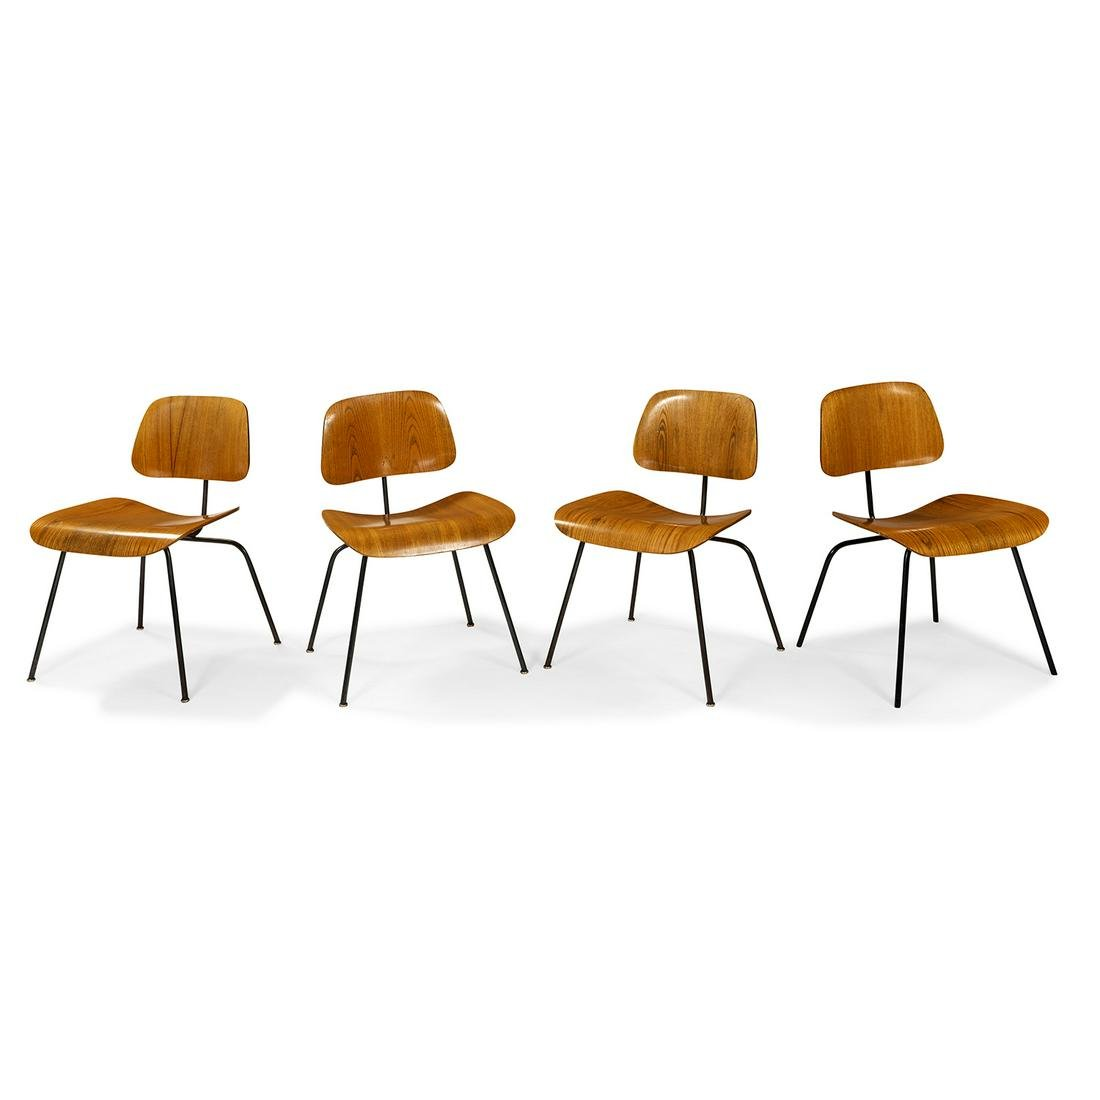 Eames for Herman Miller DCM chairs, four